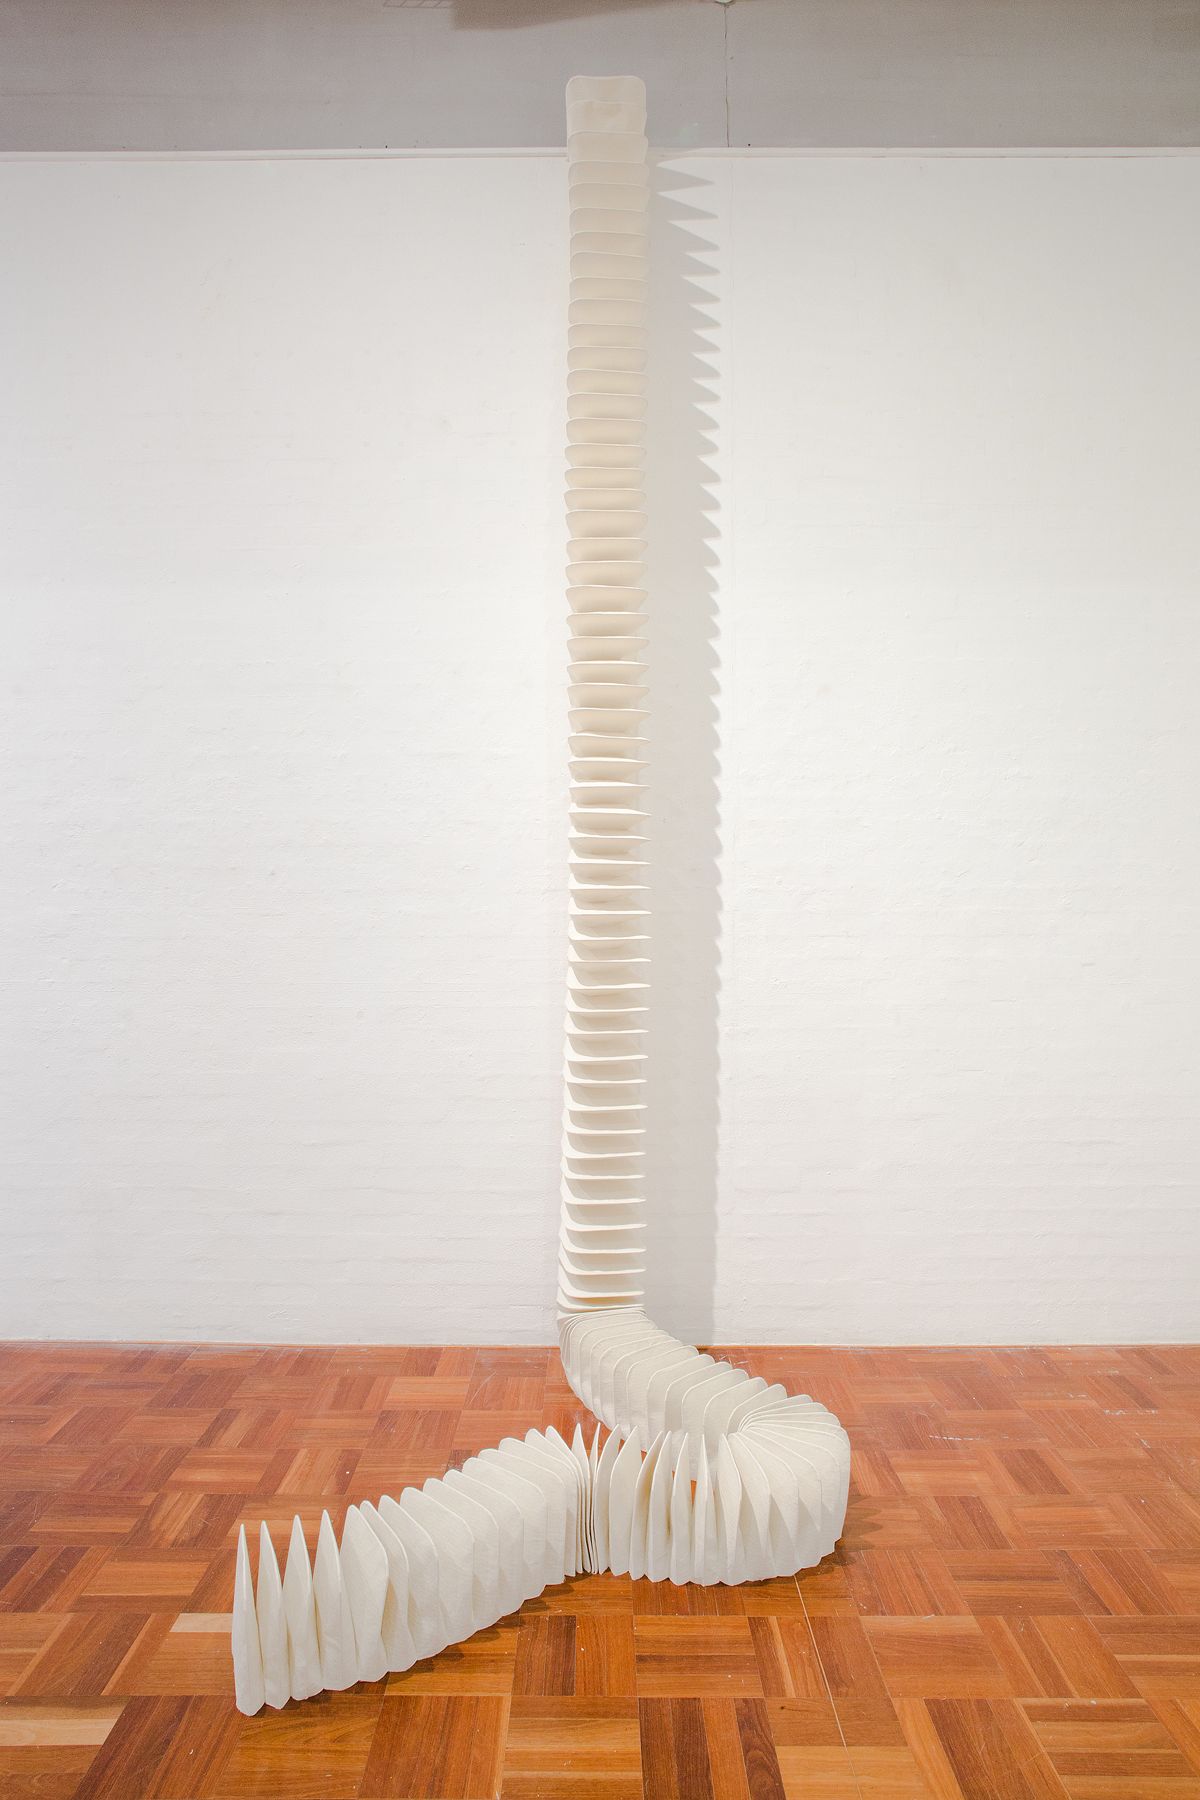 Jemima Parker,  undefined object II , 2012, hand-printed calico, sewing thread, dimensions variable Photo: Stuart Hay, ANU Photography